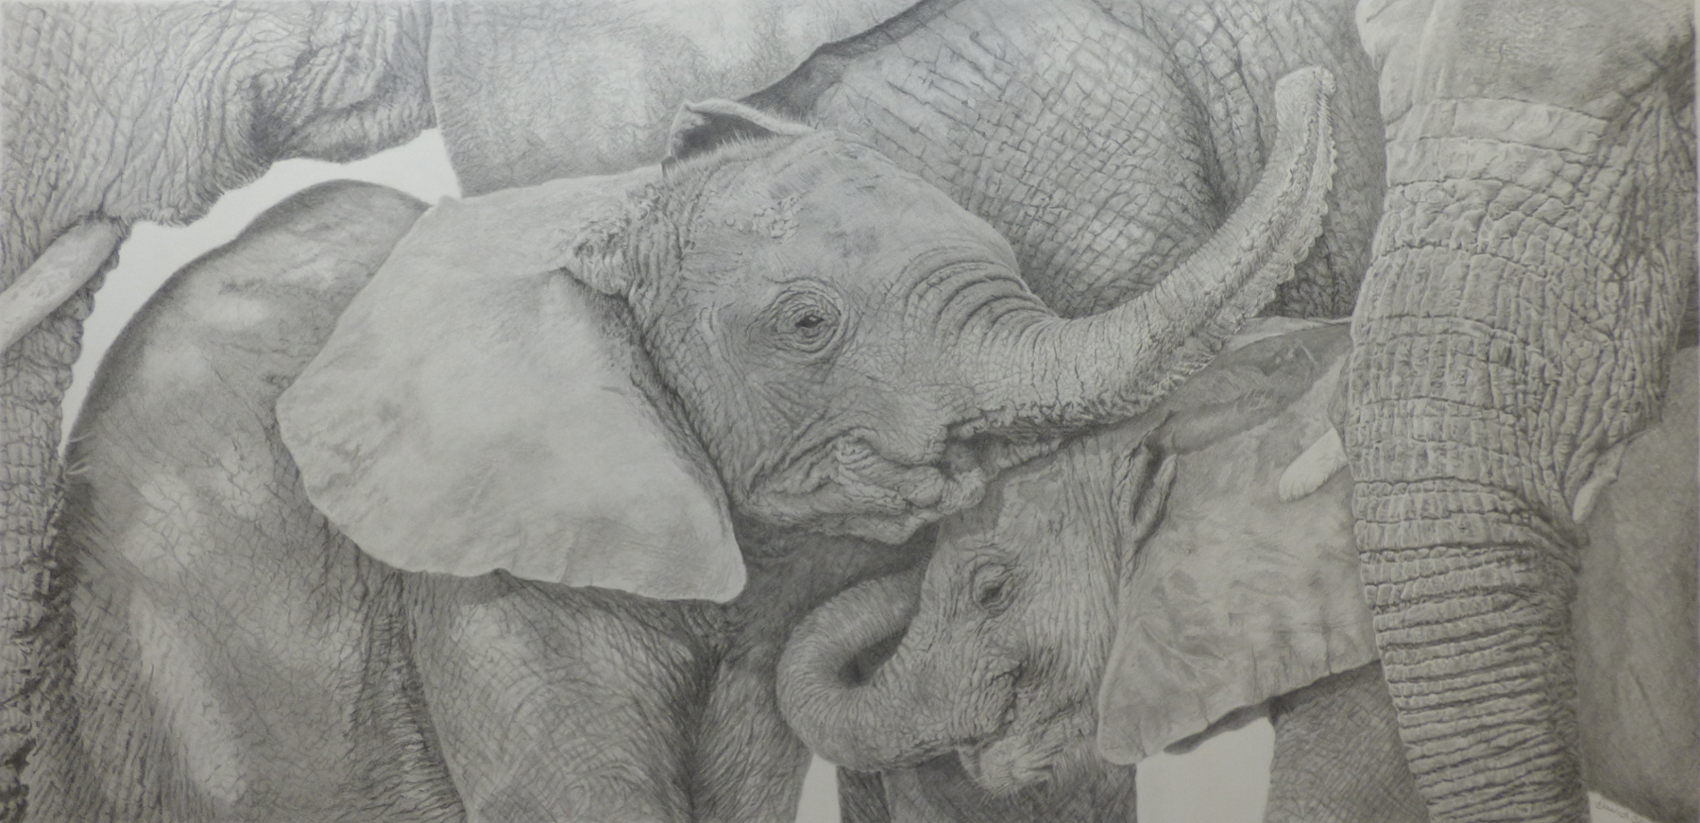 Love you too By David Skidmore – 86 x 44cm – graphite pencil on Fabriano Artistico hot press paper - £4500